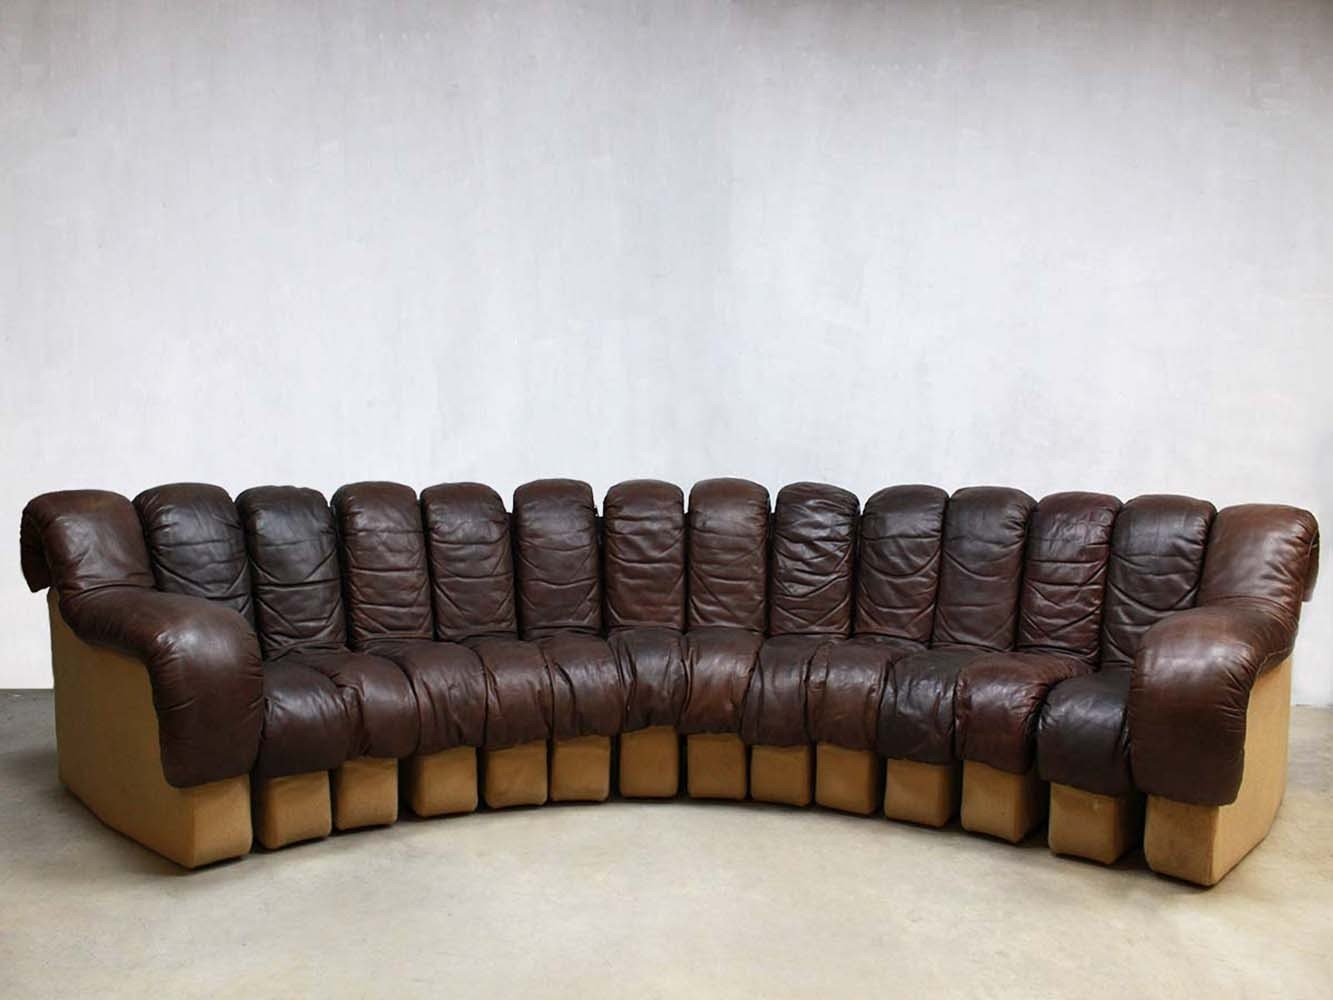 ds 600 sofa by ueli berger eleonore peduzzi riva for de sede 1970s 56820. Black Bedroom Furniture Sets. Home Design Ideas